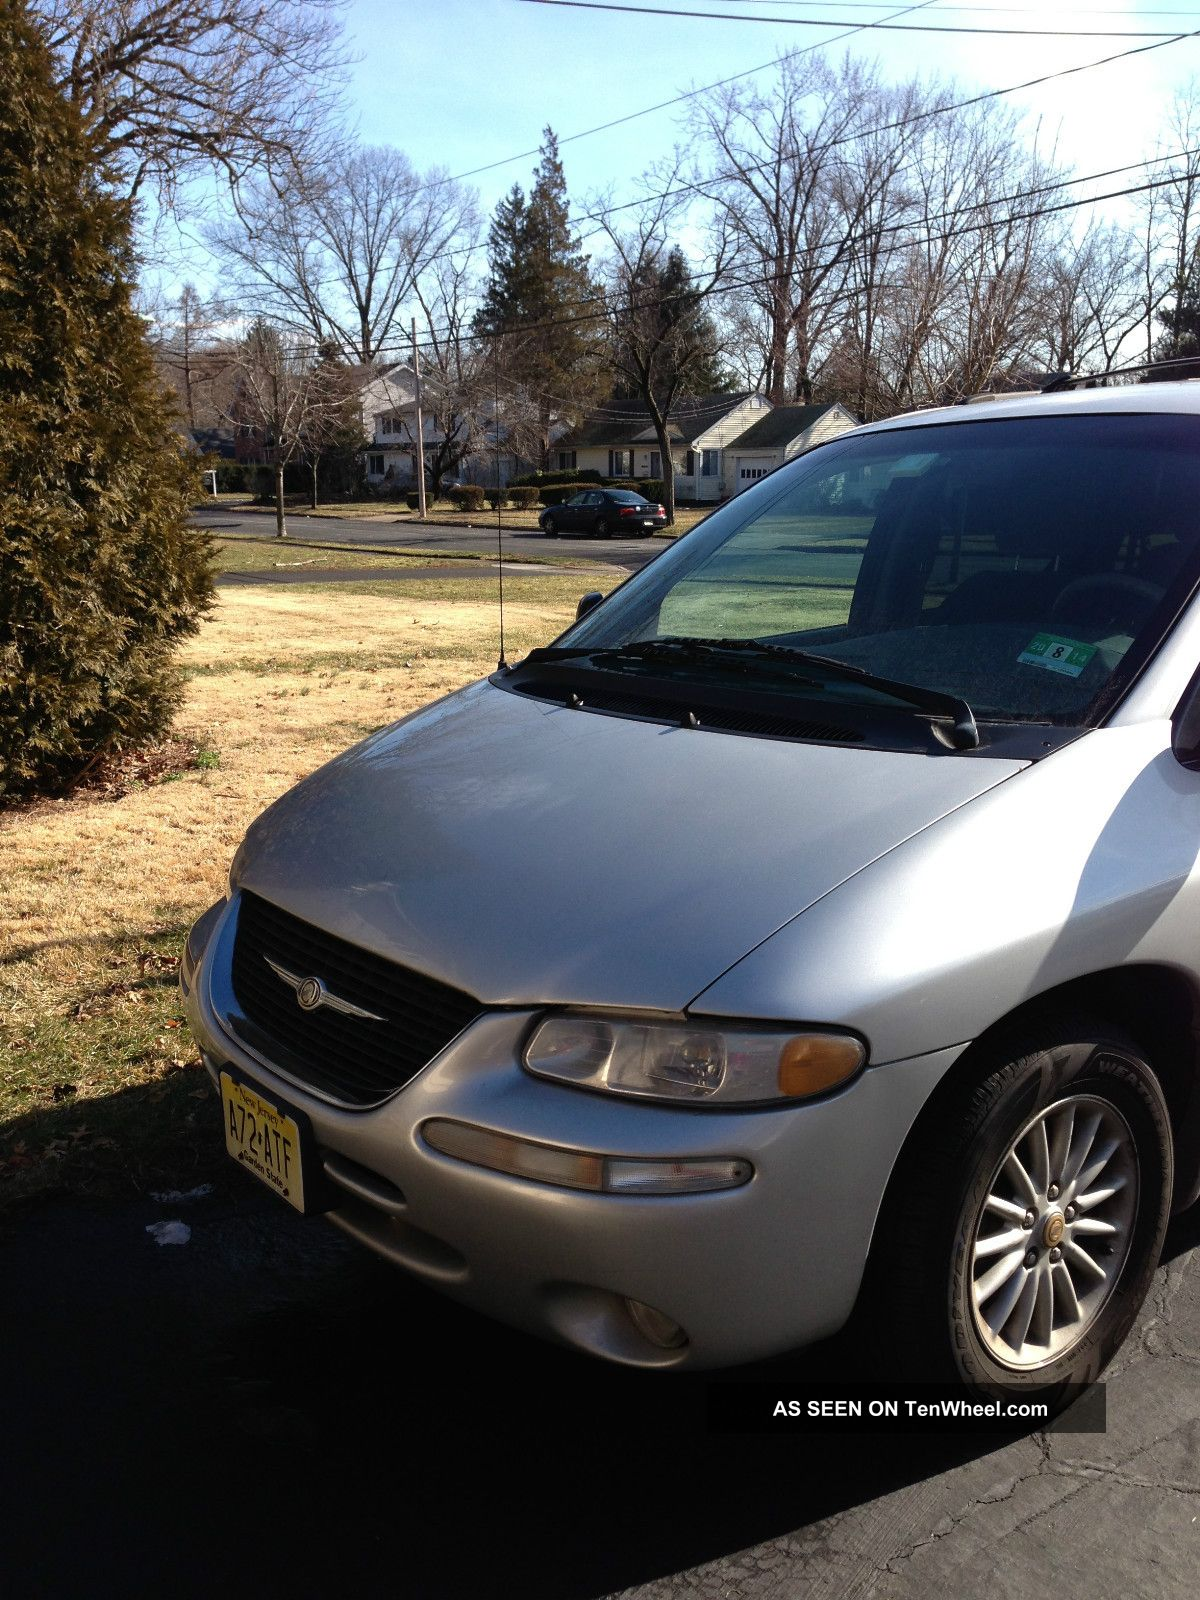 Town And Country Honda >> 2000 Chrysler Town And Country Minivan